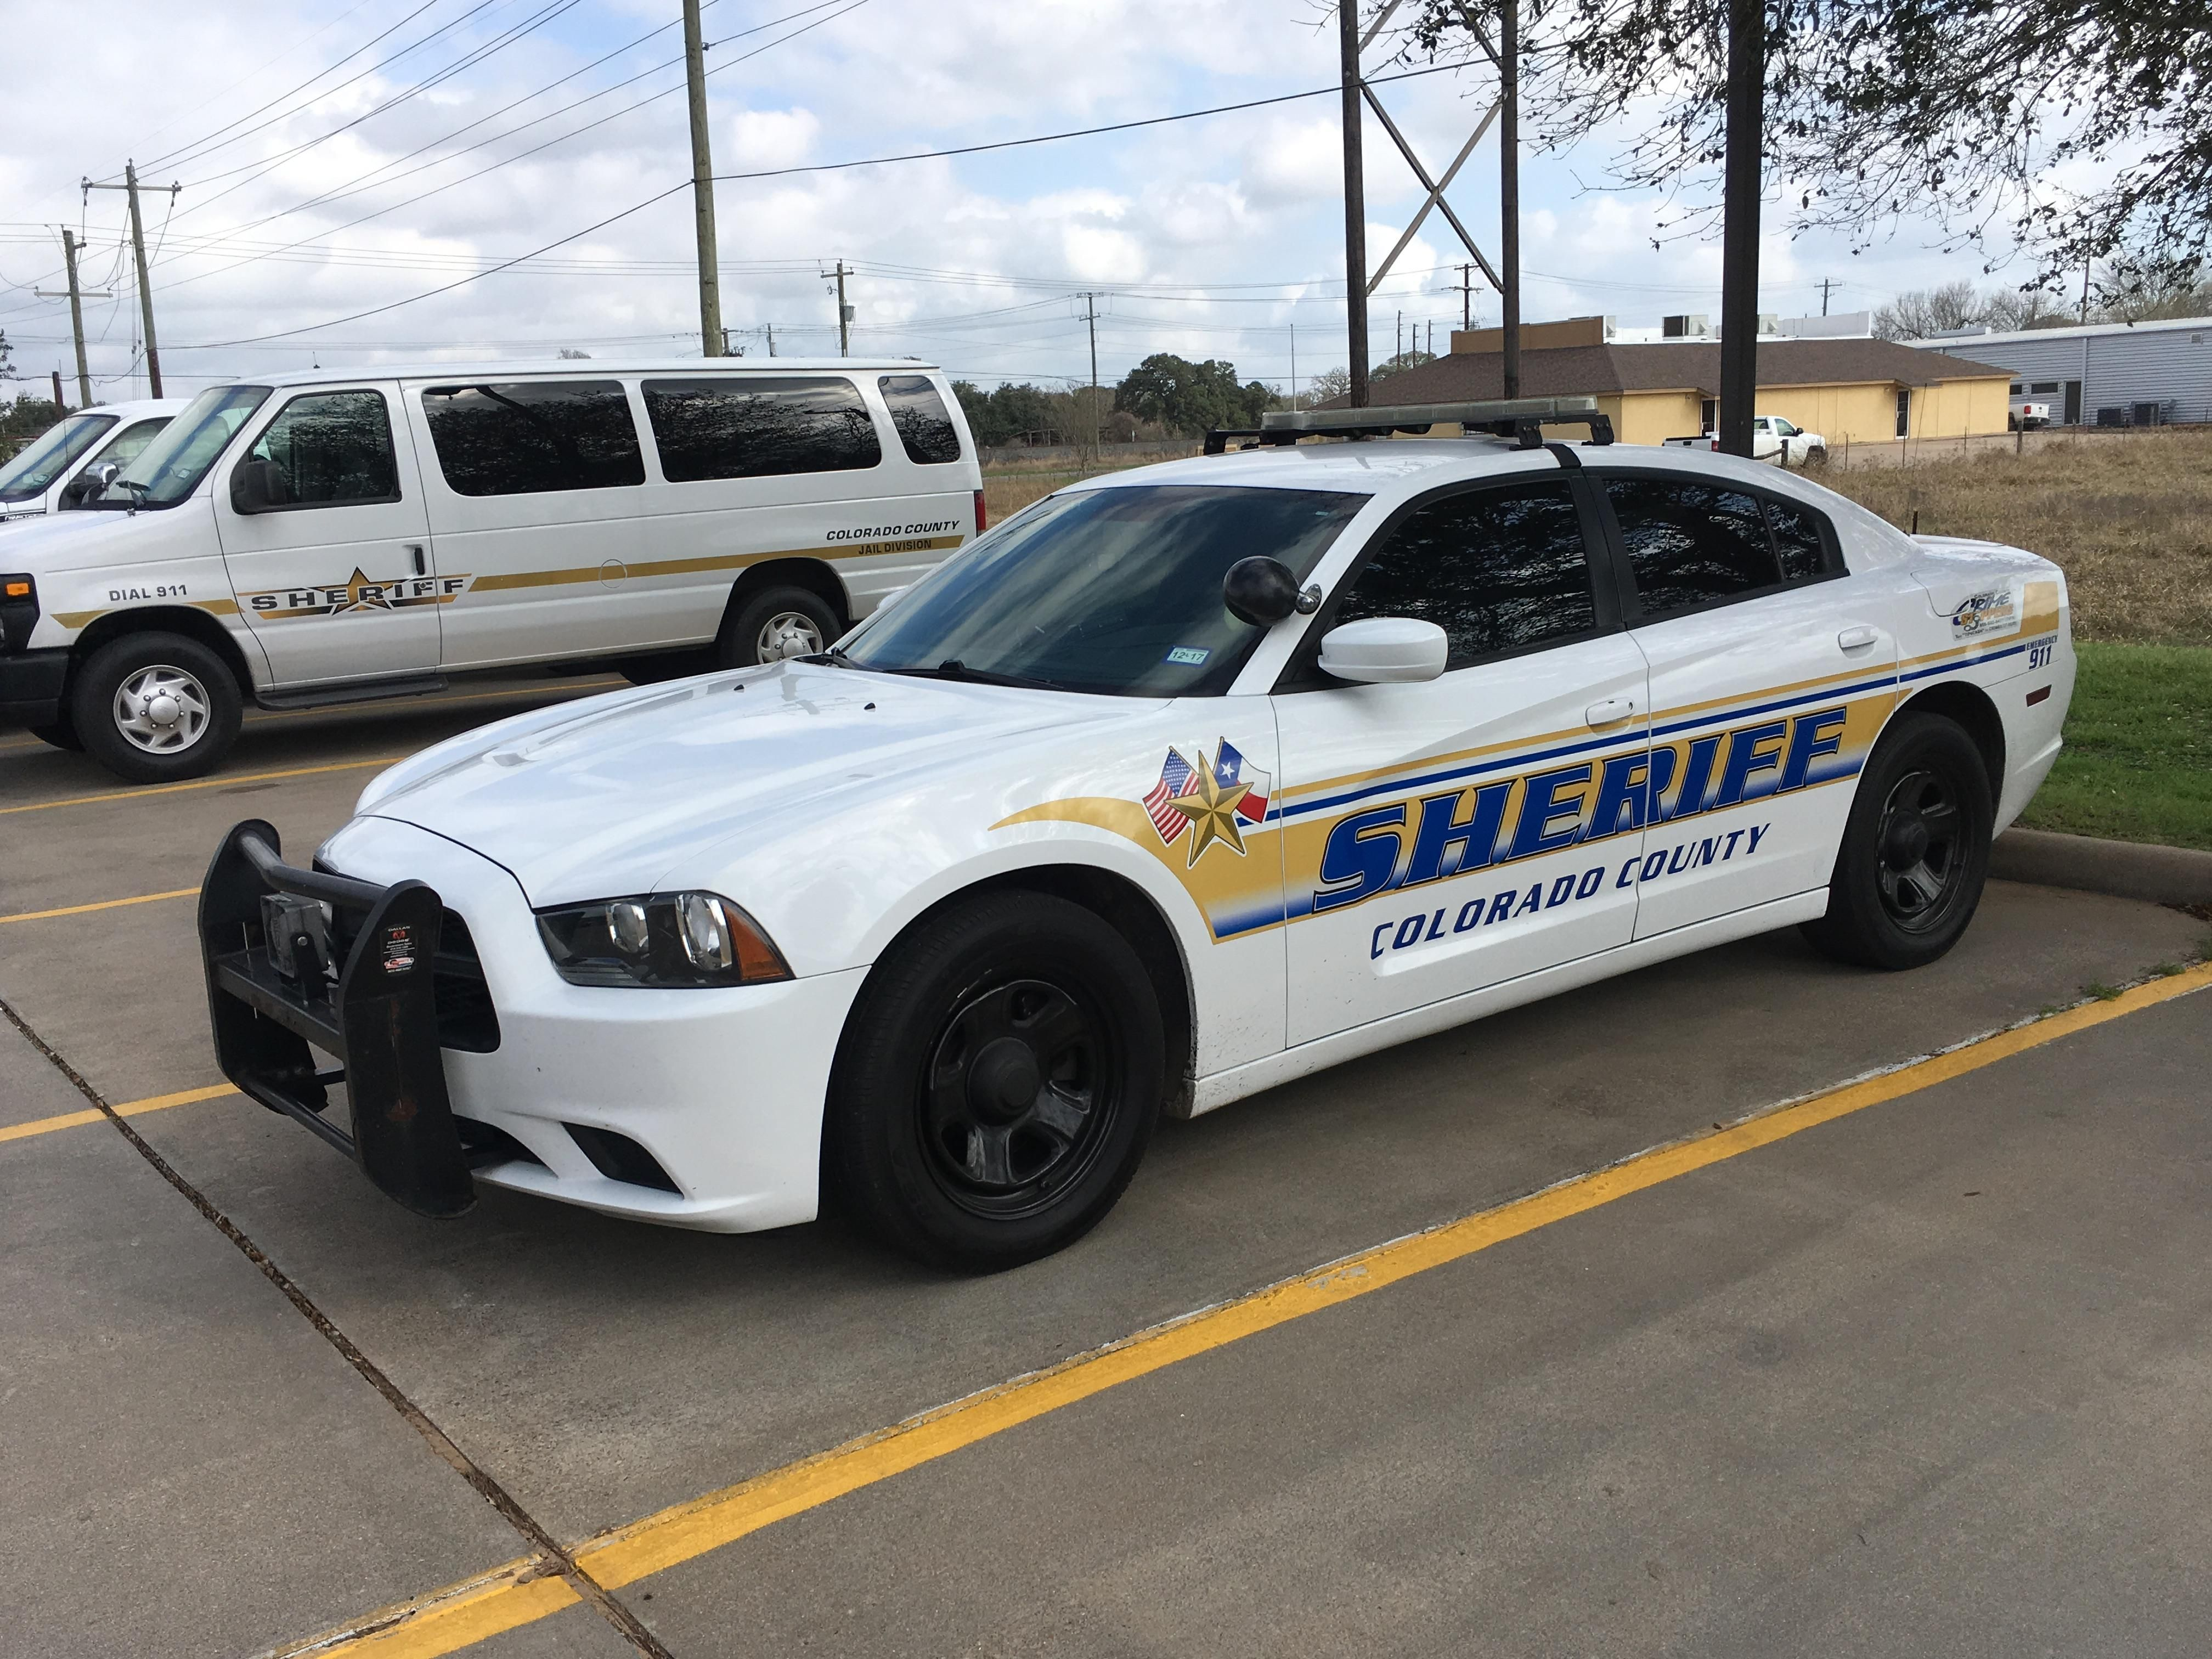 colorado county sheriff 39 s office dodge charger texas dodge charger dodge and police vehicles. Black Bedroom Furniture Sets. Home Design Ideas